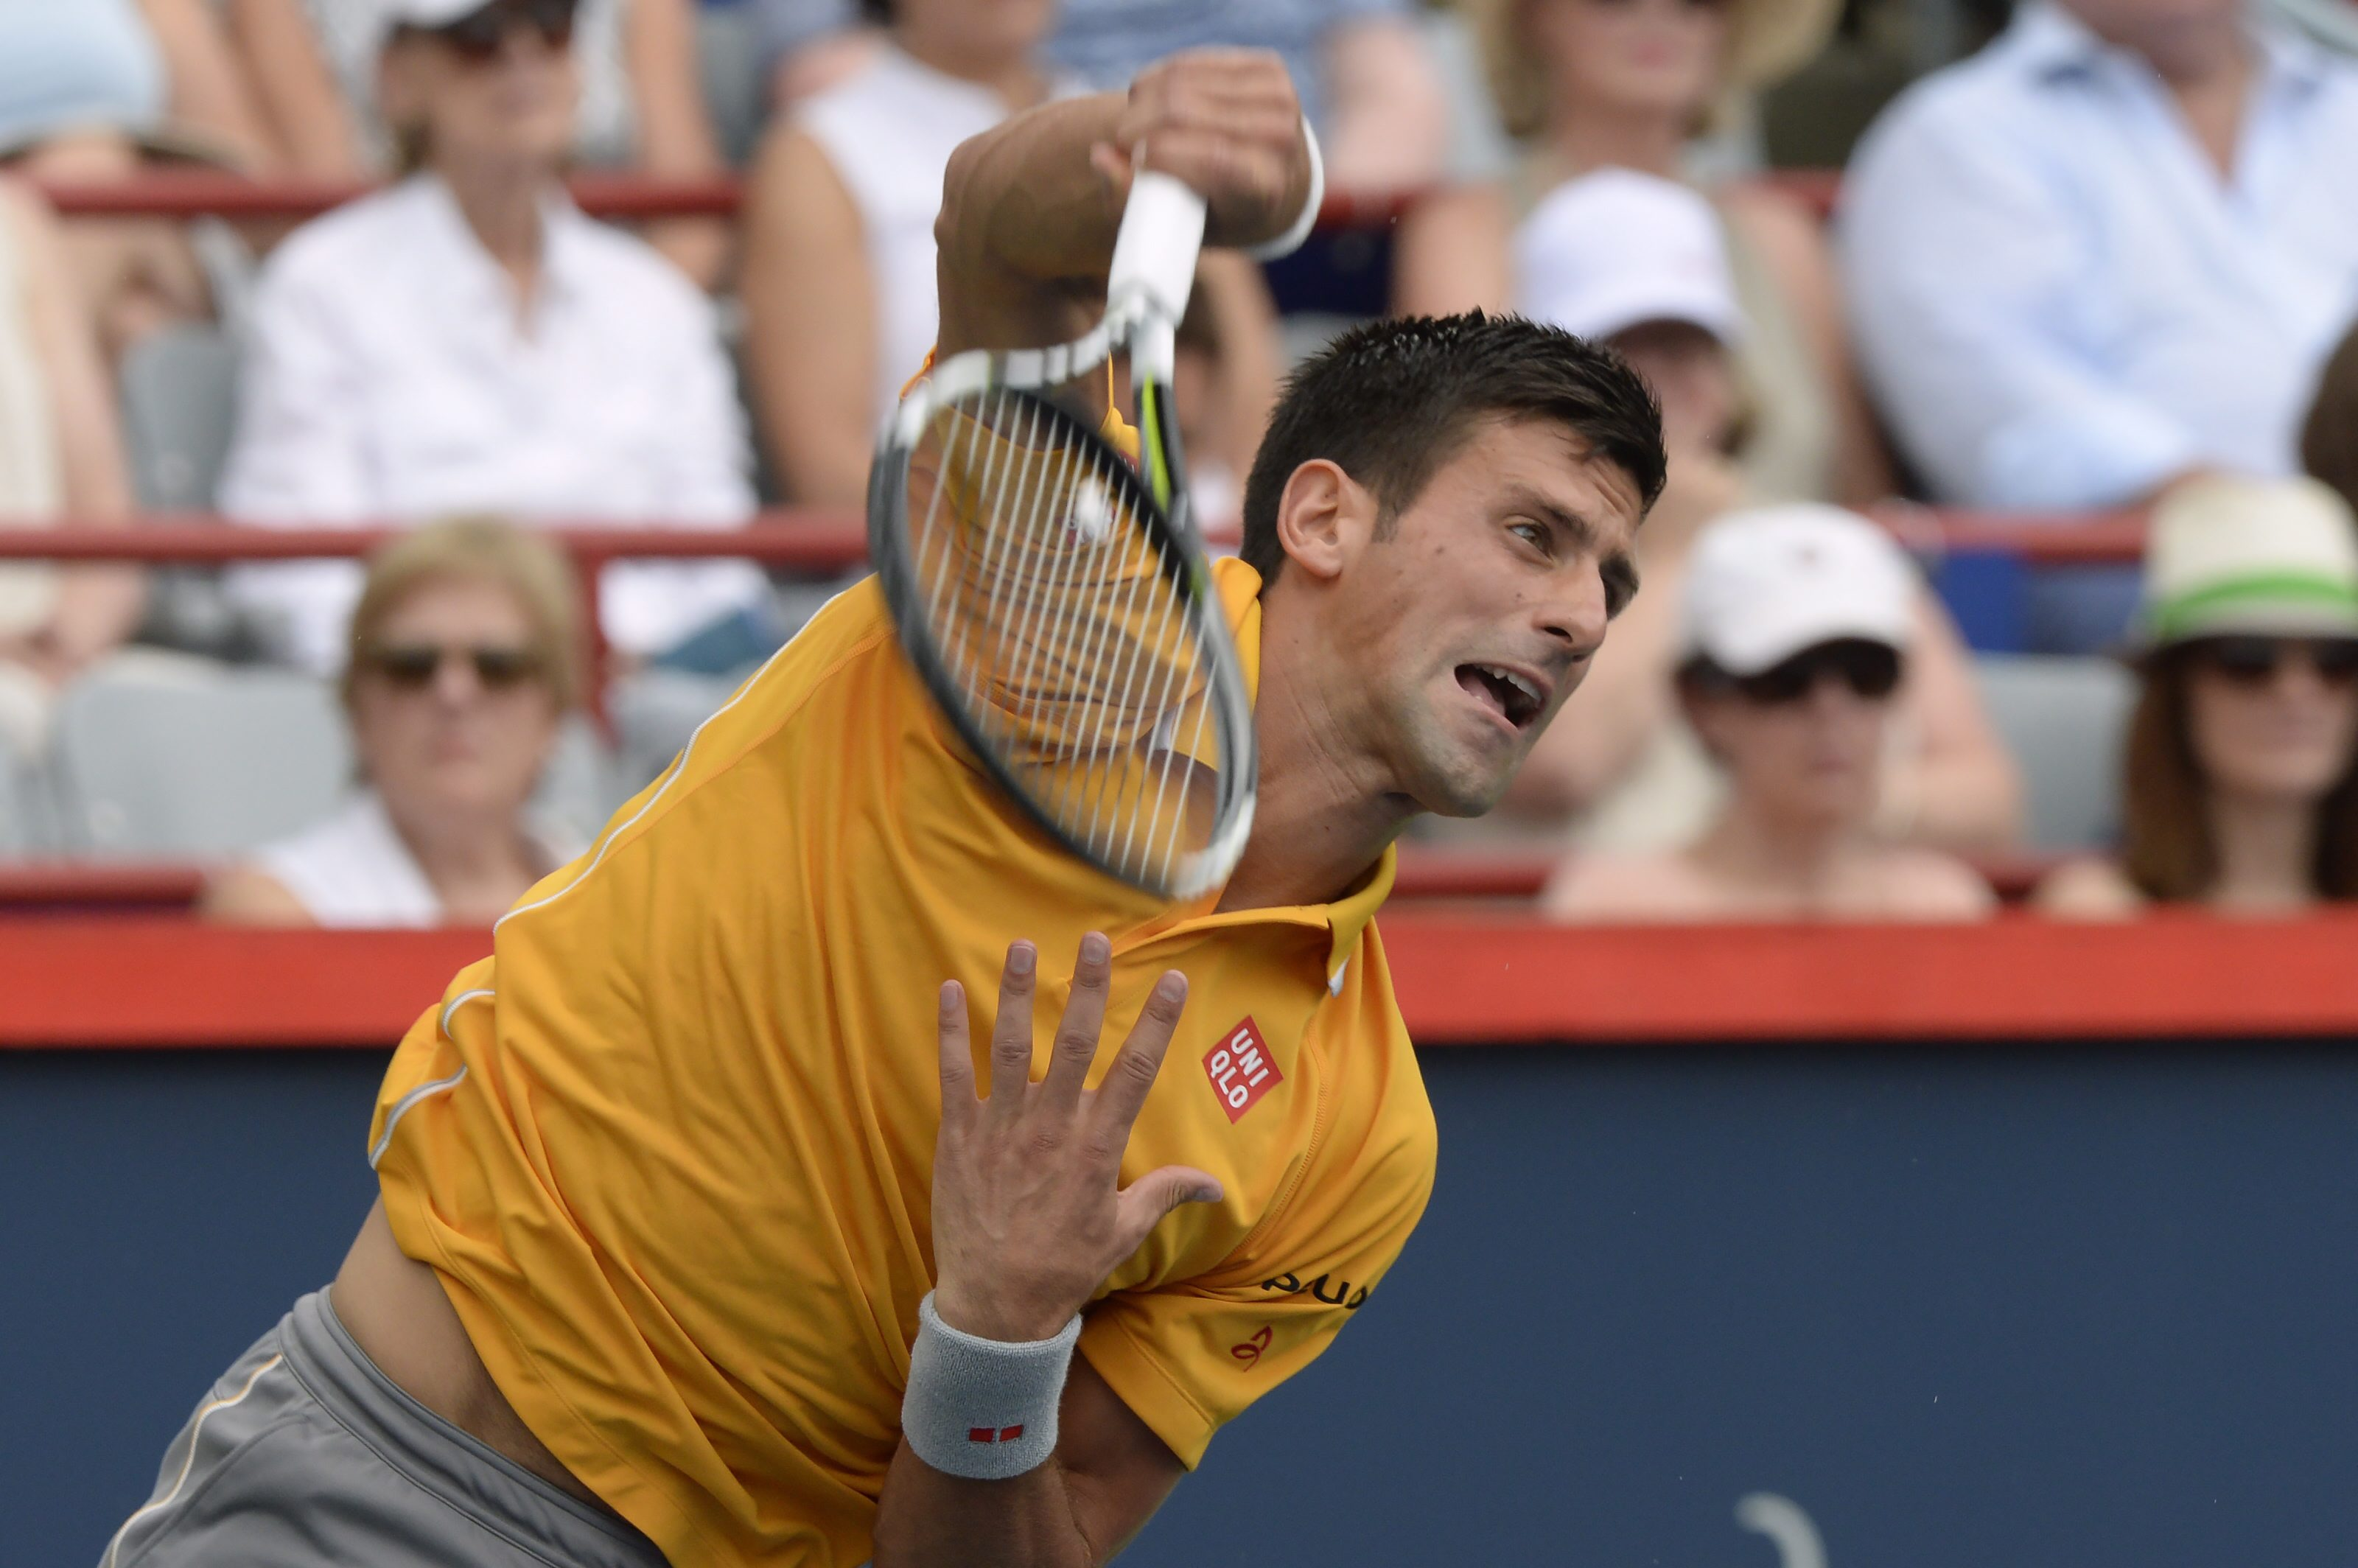 Novak Djokovic, of Serbia, serves to Jeremy Chardy, of France, during the Rogers Cup semifinal tennis tournament, Saturday, Aug. 15, 2015 in Montreal.(Paul Chiasson/The Canadian Press via AP) MANDATORY CREDIT